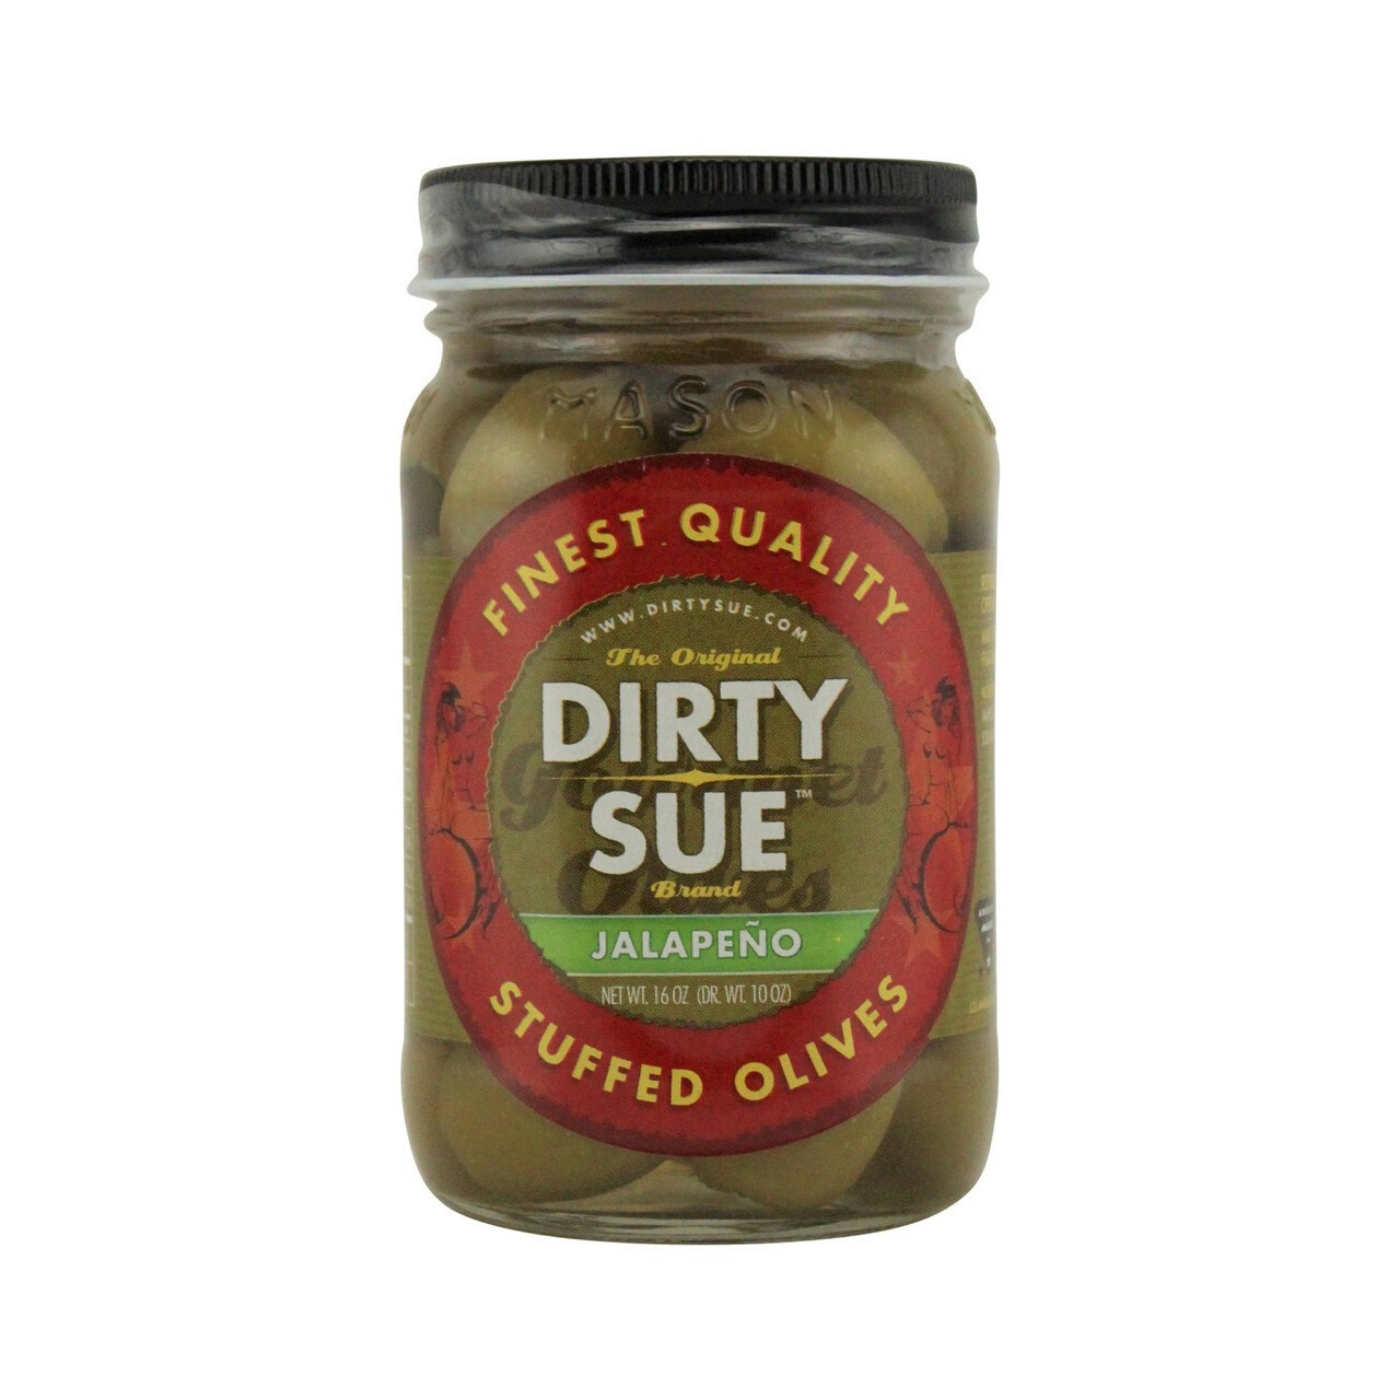 Dirty Sue Jalapeno Stuffed Olives